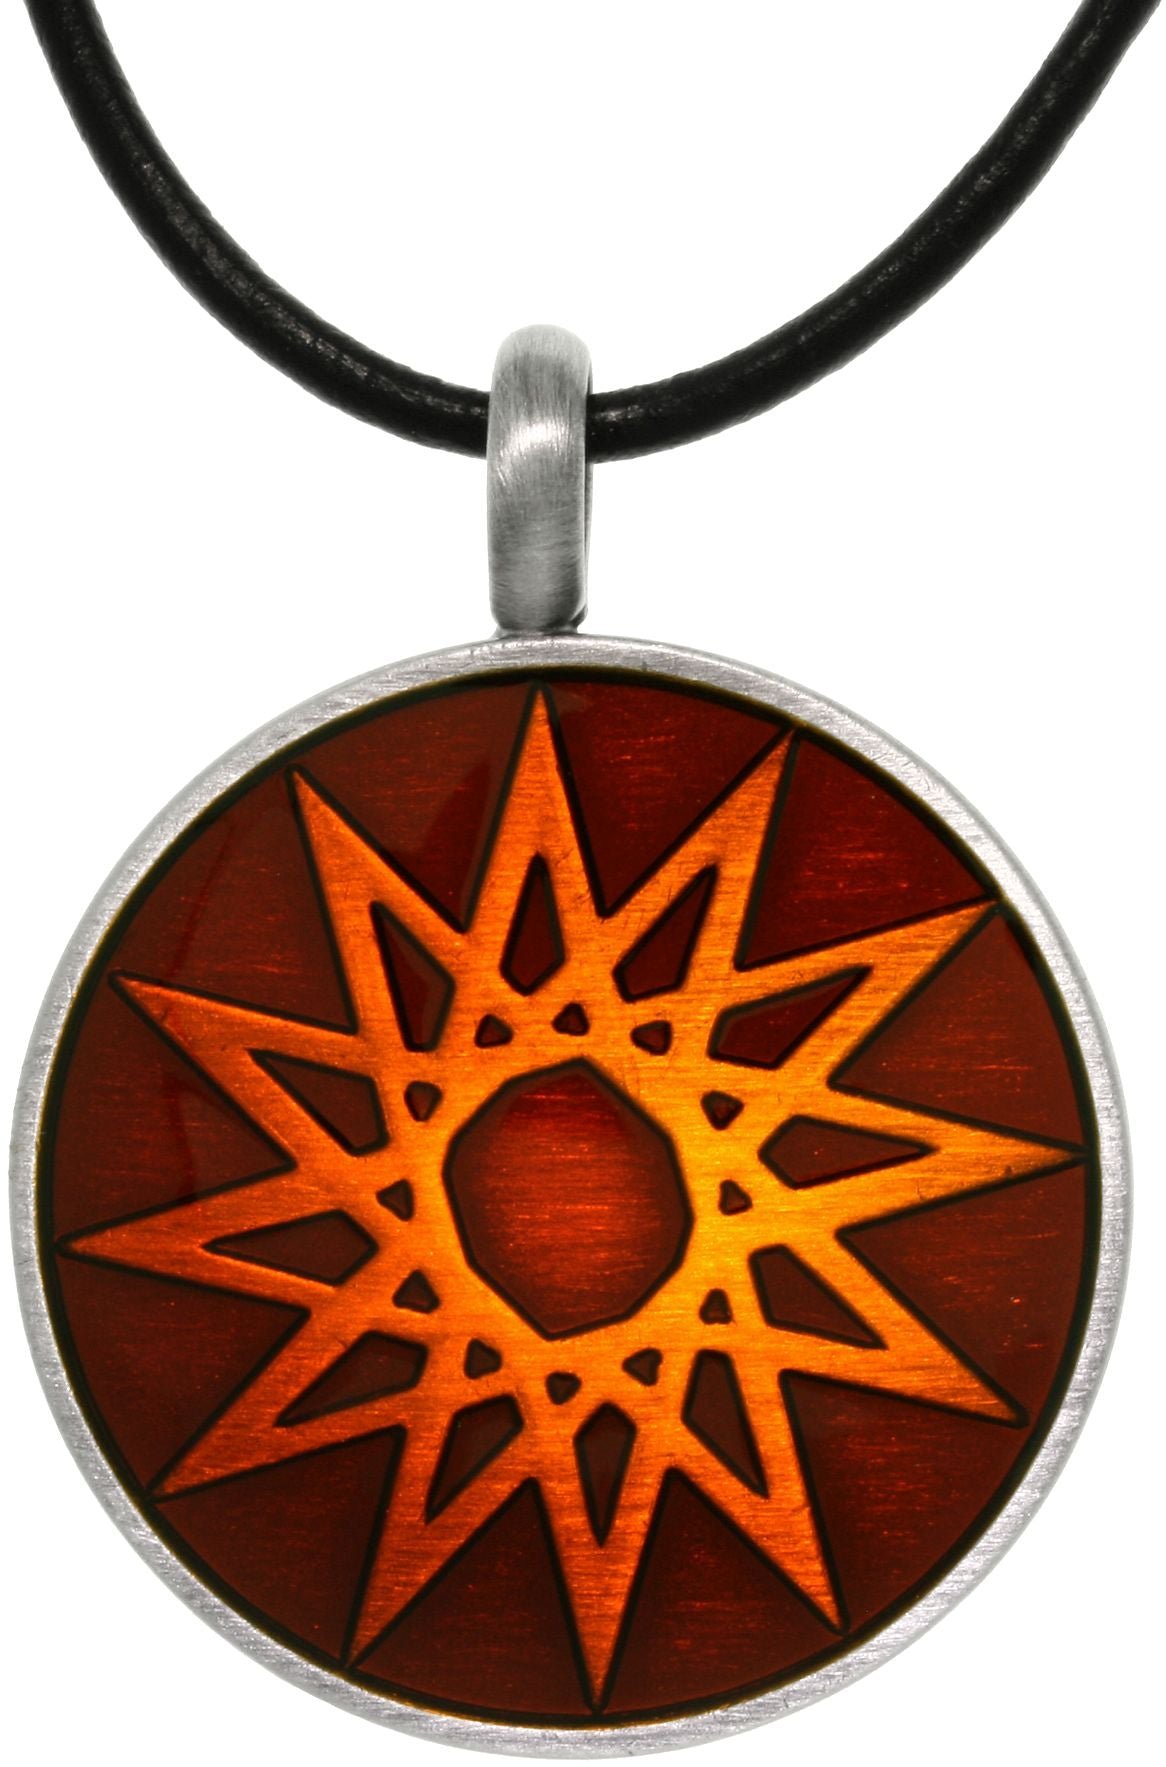 "Jewelry Trends Pewter Magic Star Vibrant Blood Orange Round Celestial Success Pendant on 18"" Black Leather Cord Necklace"